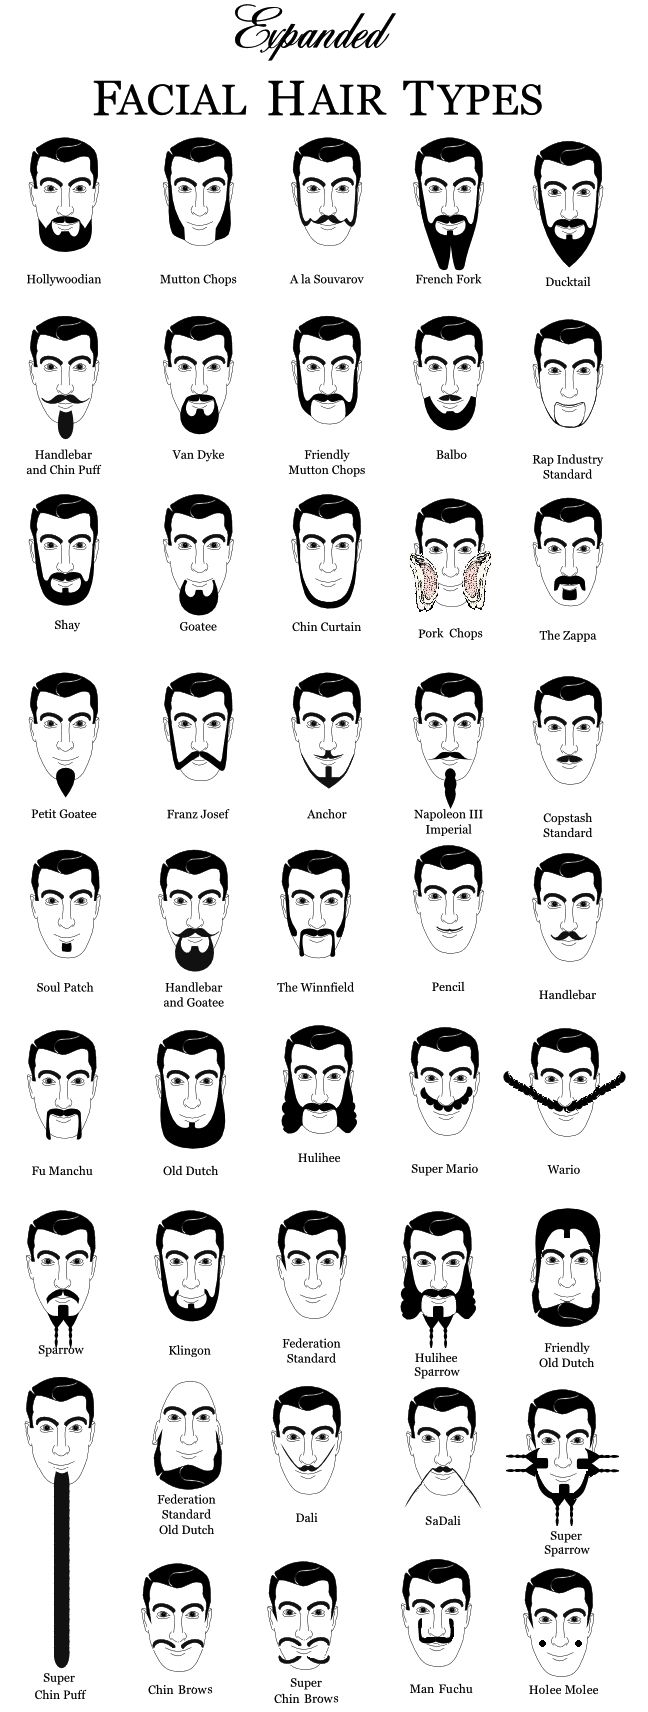 beards, mustach, goatees, soul patch, etc.